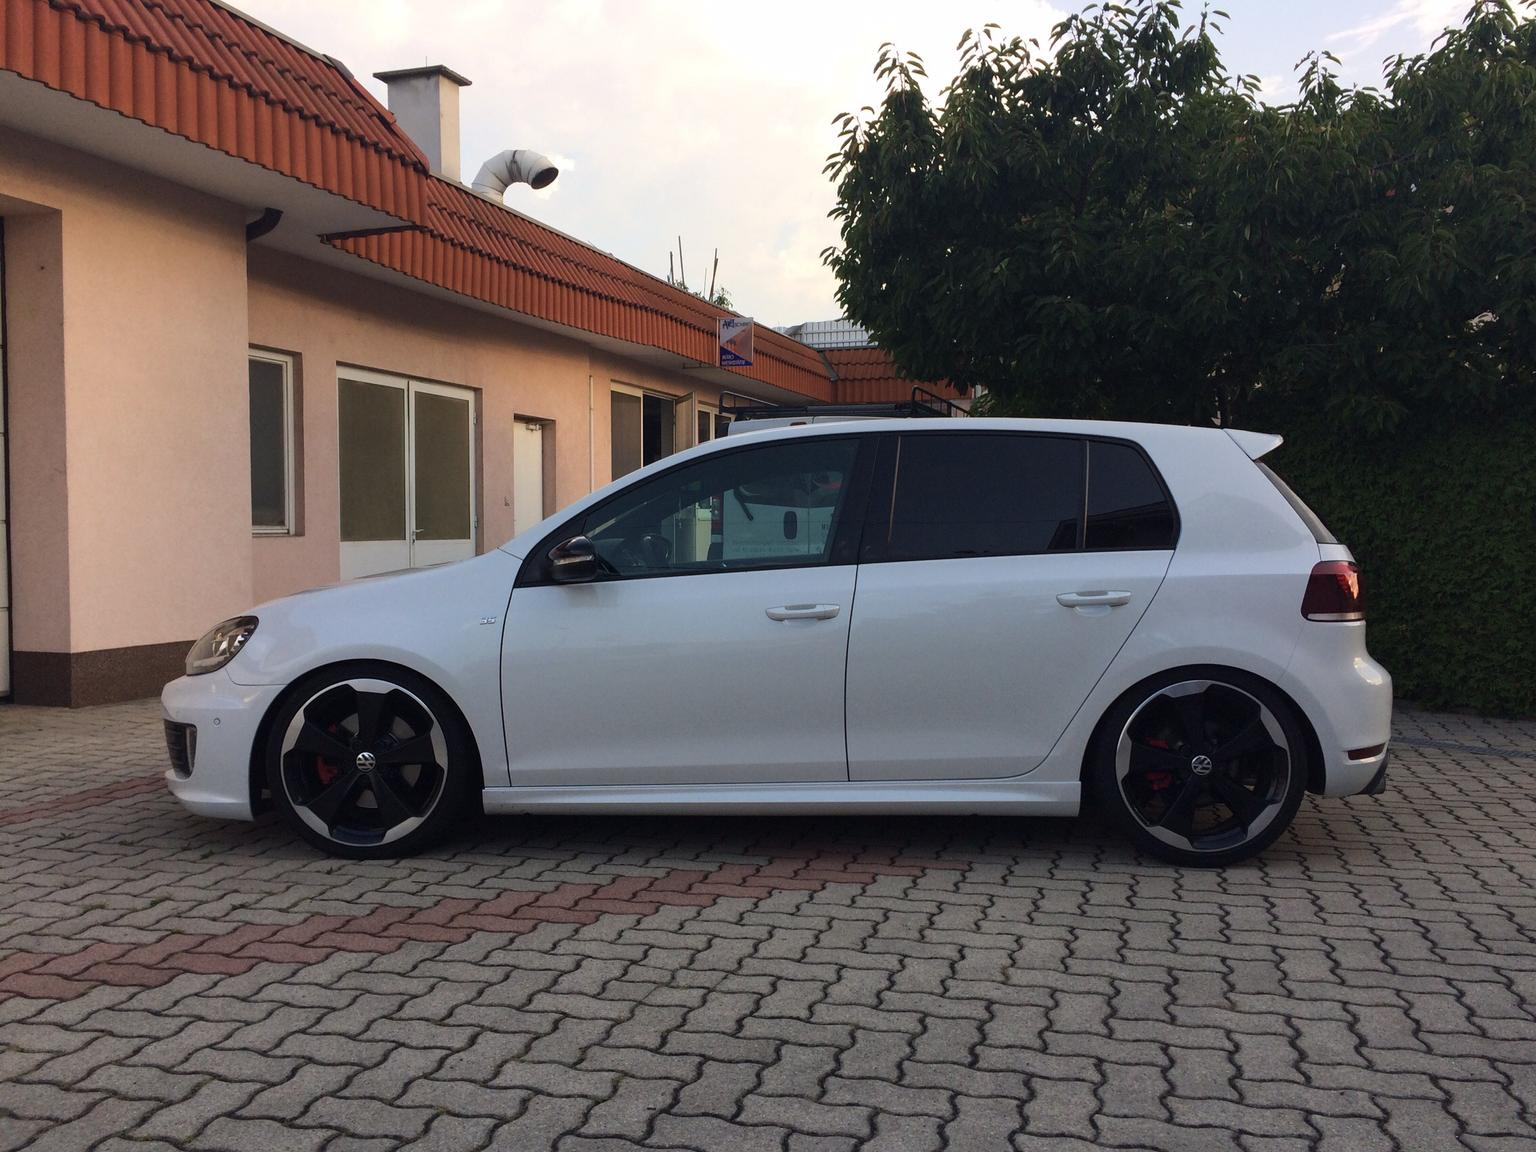 golf 6 gti edition 35 glendale felgen 19 zoll in 9122 sankt kanzian am klopeiner see for. Black Bedroom Furniture Sets. Home Design Ideas